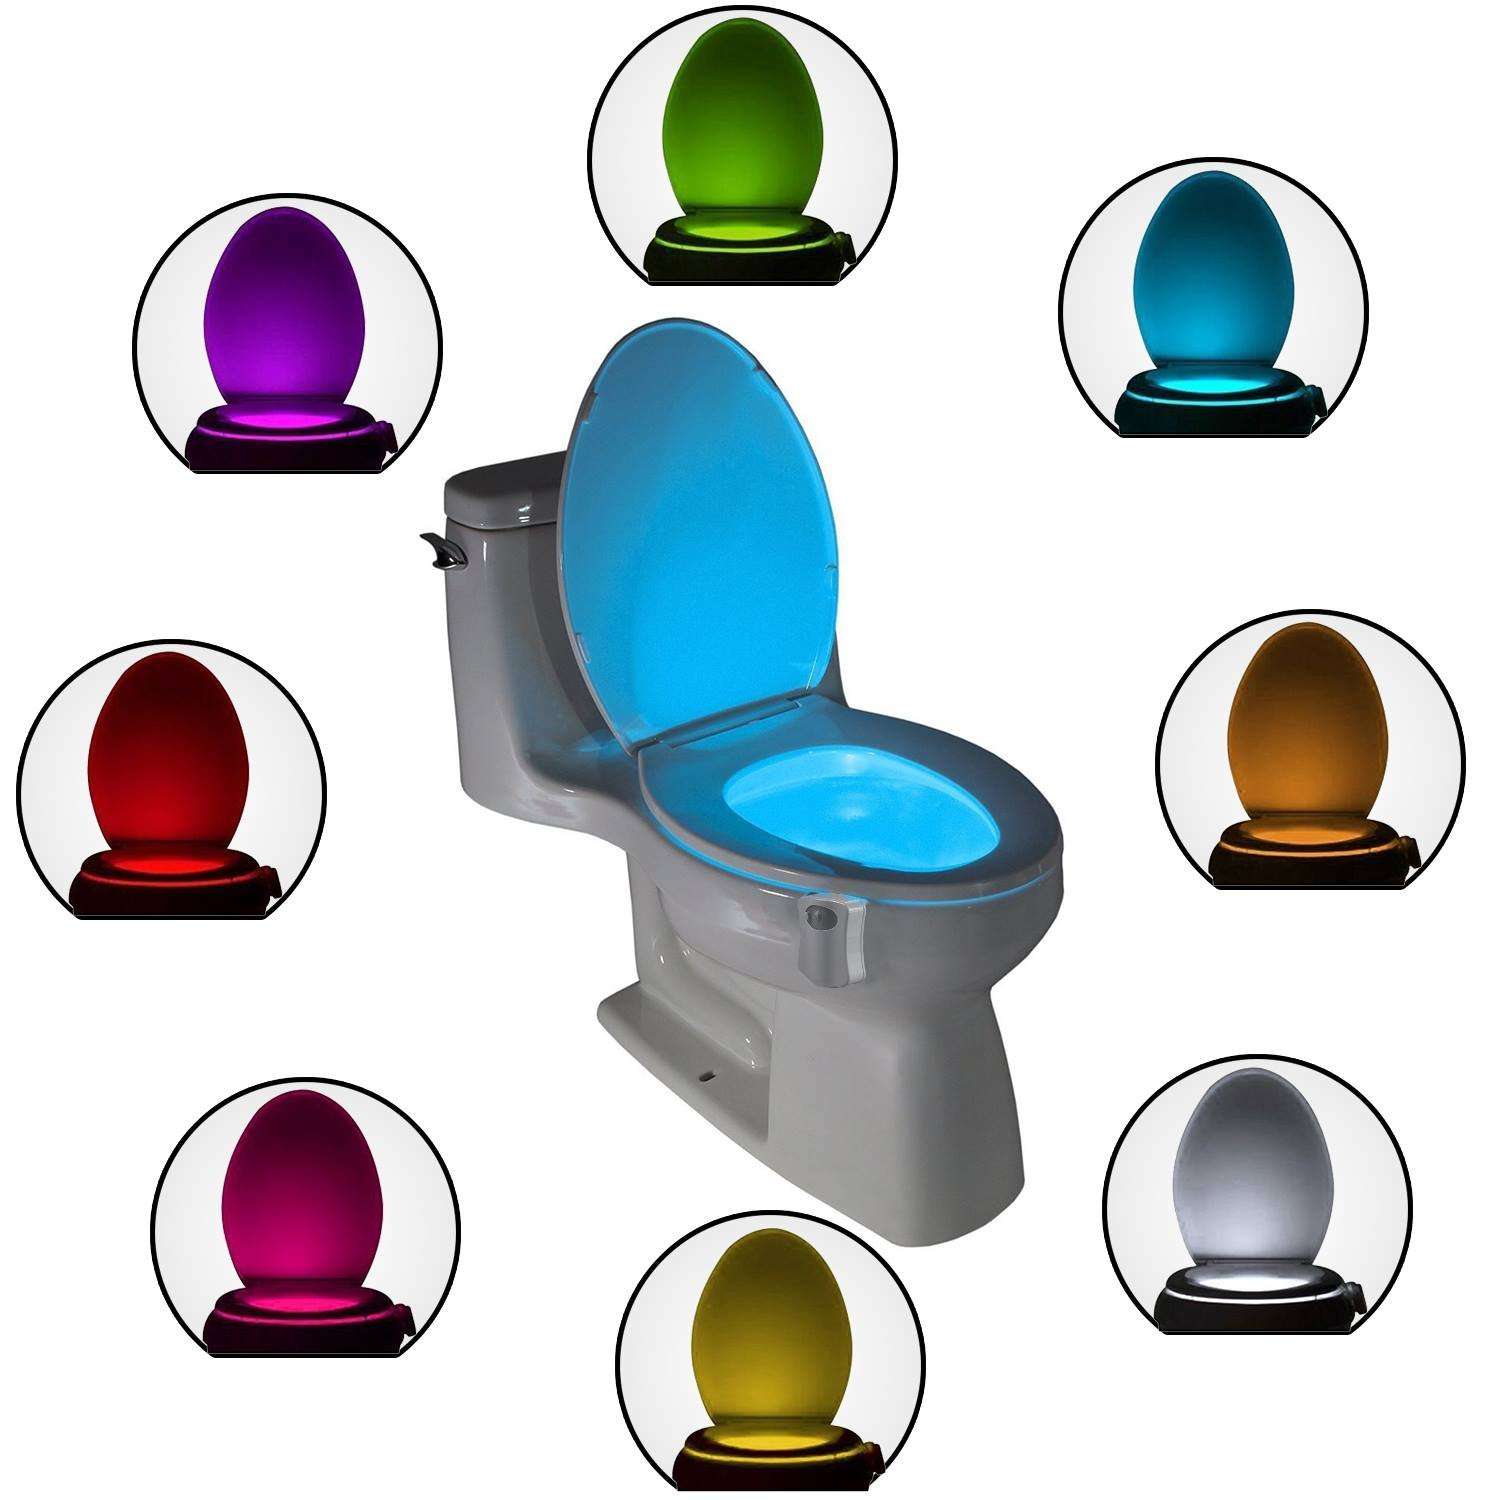 The Original Toilet Night Light Gadget. Fun Fathers Day Gifts from Daughter Wife Son Kids Girlfriend. Weird Novelty Funny Birthday Gag Gift for Men Dad Boys Toddlers Motion Sensor Activated LED Colors